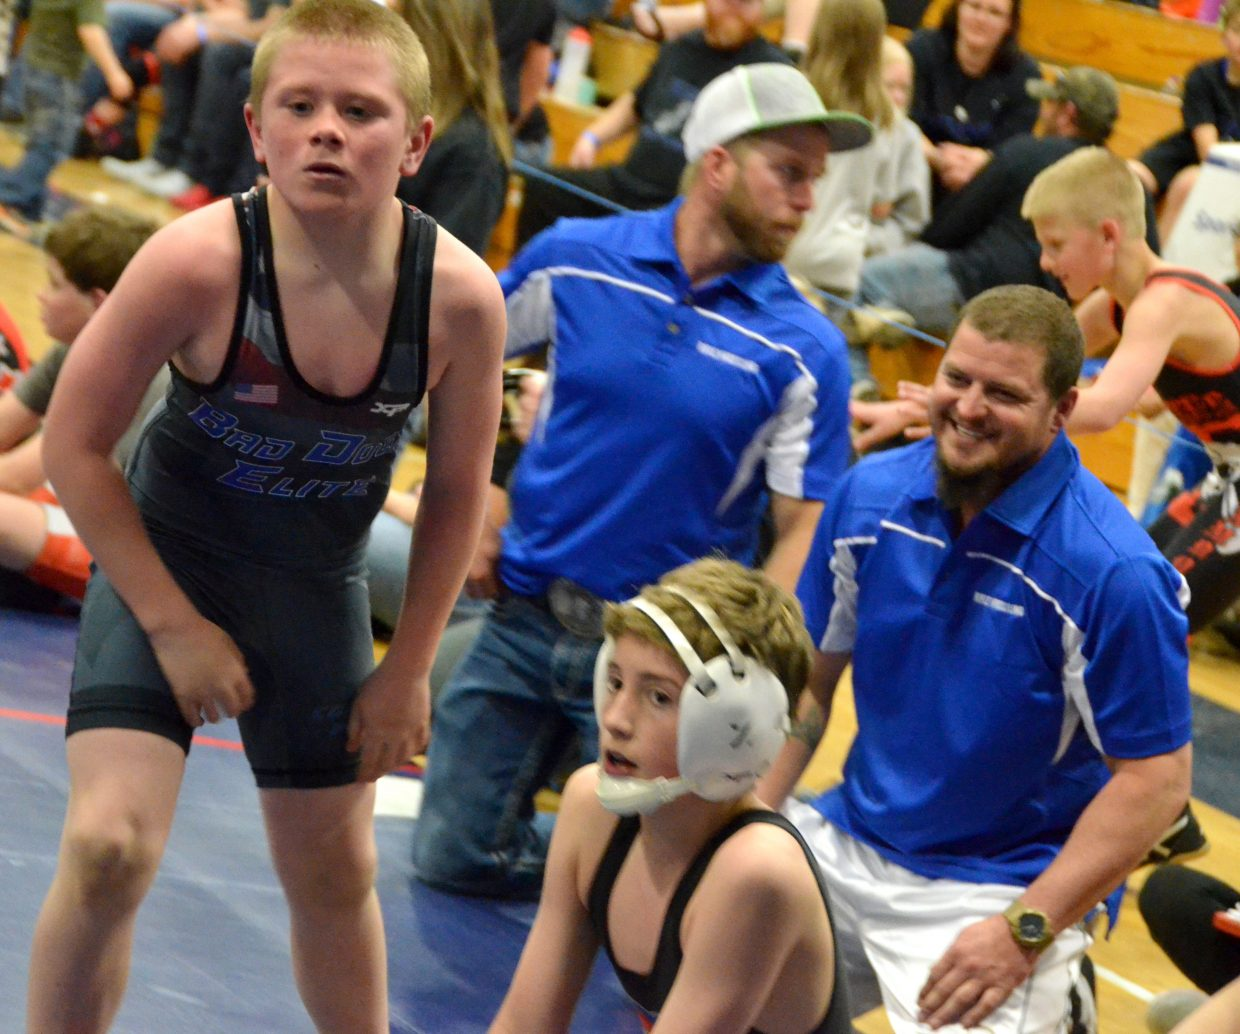 Zach Hedman confers with coaches as he gets a breather in Saturday's Levi Weber Memorial Tournament.